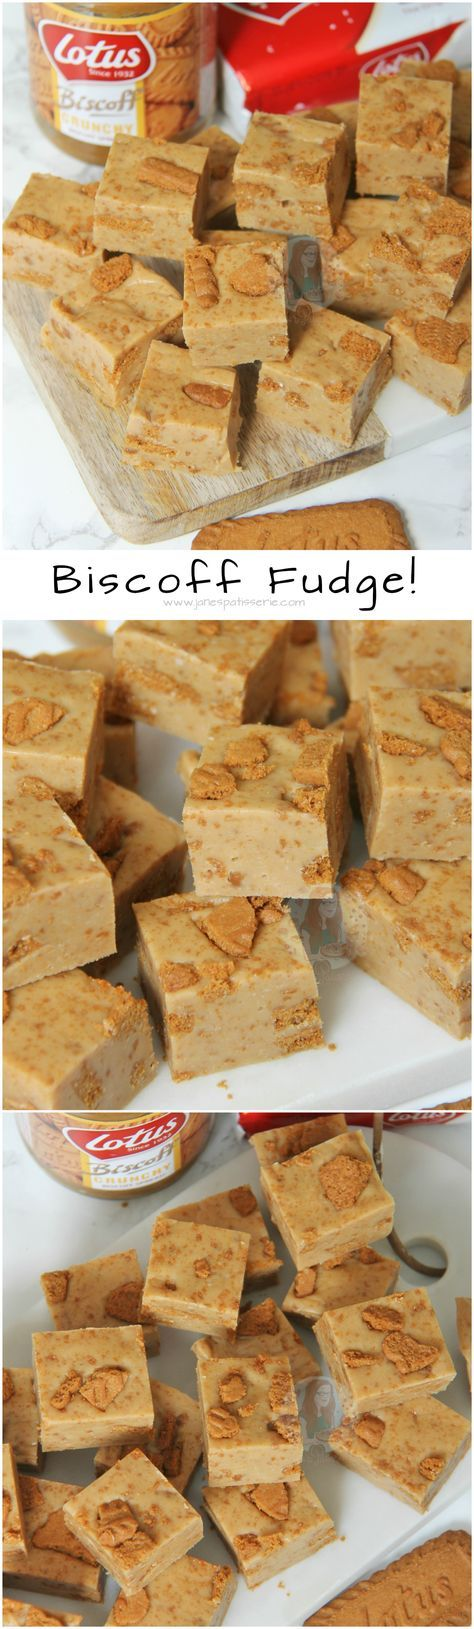 Biscoff Fudge! ❤️ A Delicious and Super Easy to make Fudge Recipe absolutely brimming with the delicious Lotus Biscoff flavour!